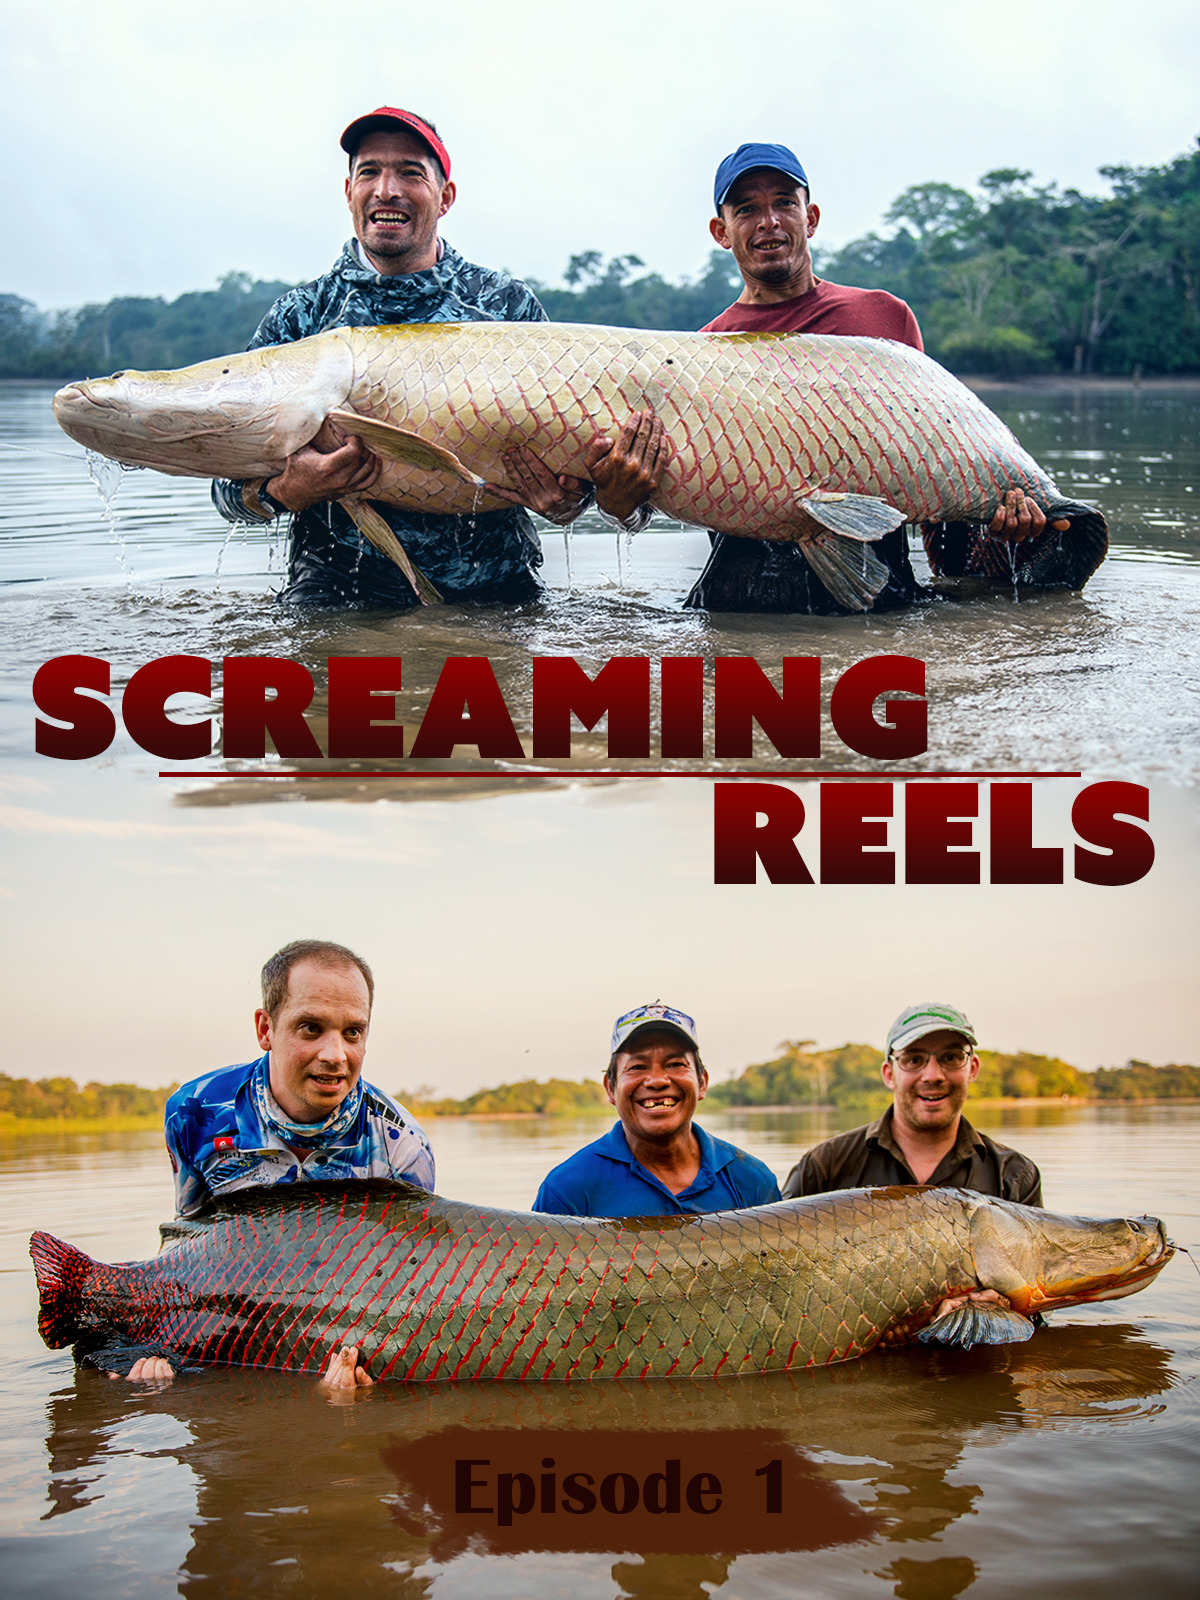 Screaming Reels - Episode I